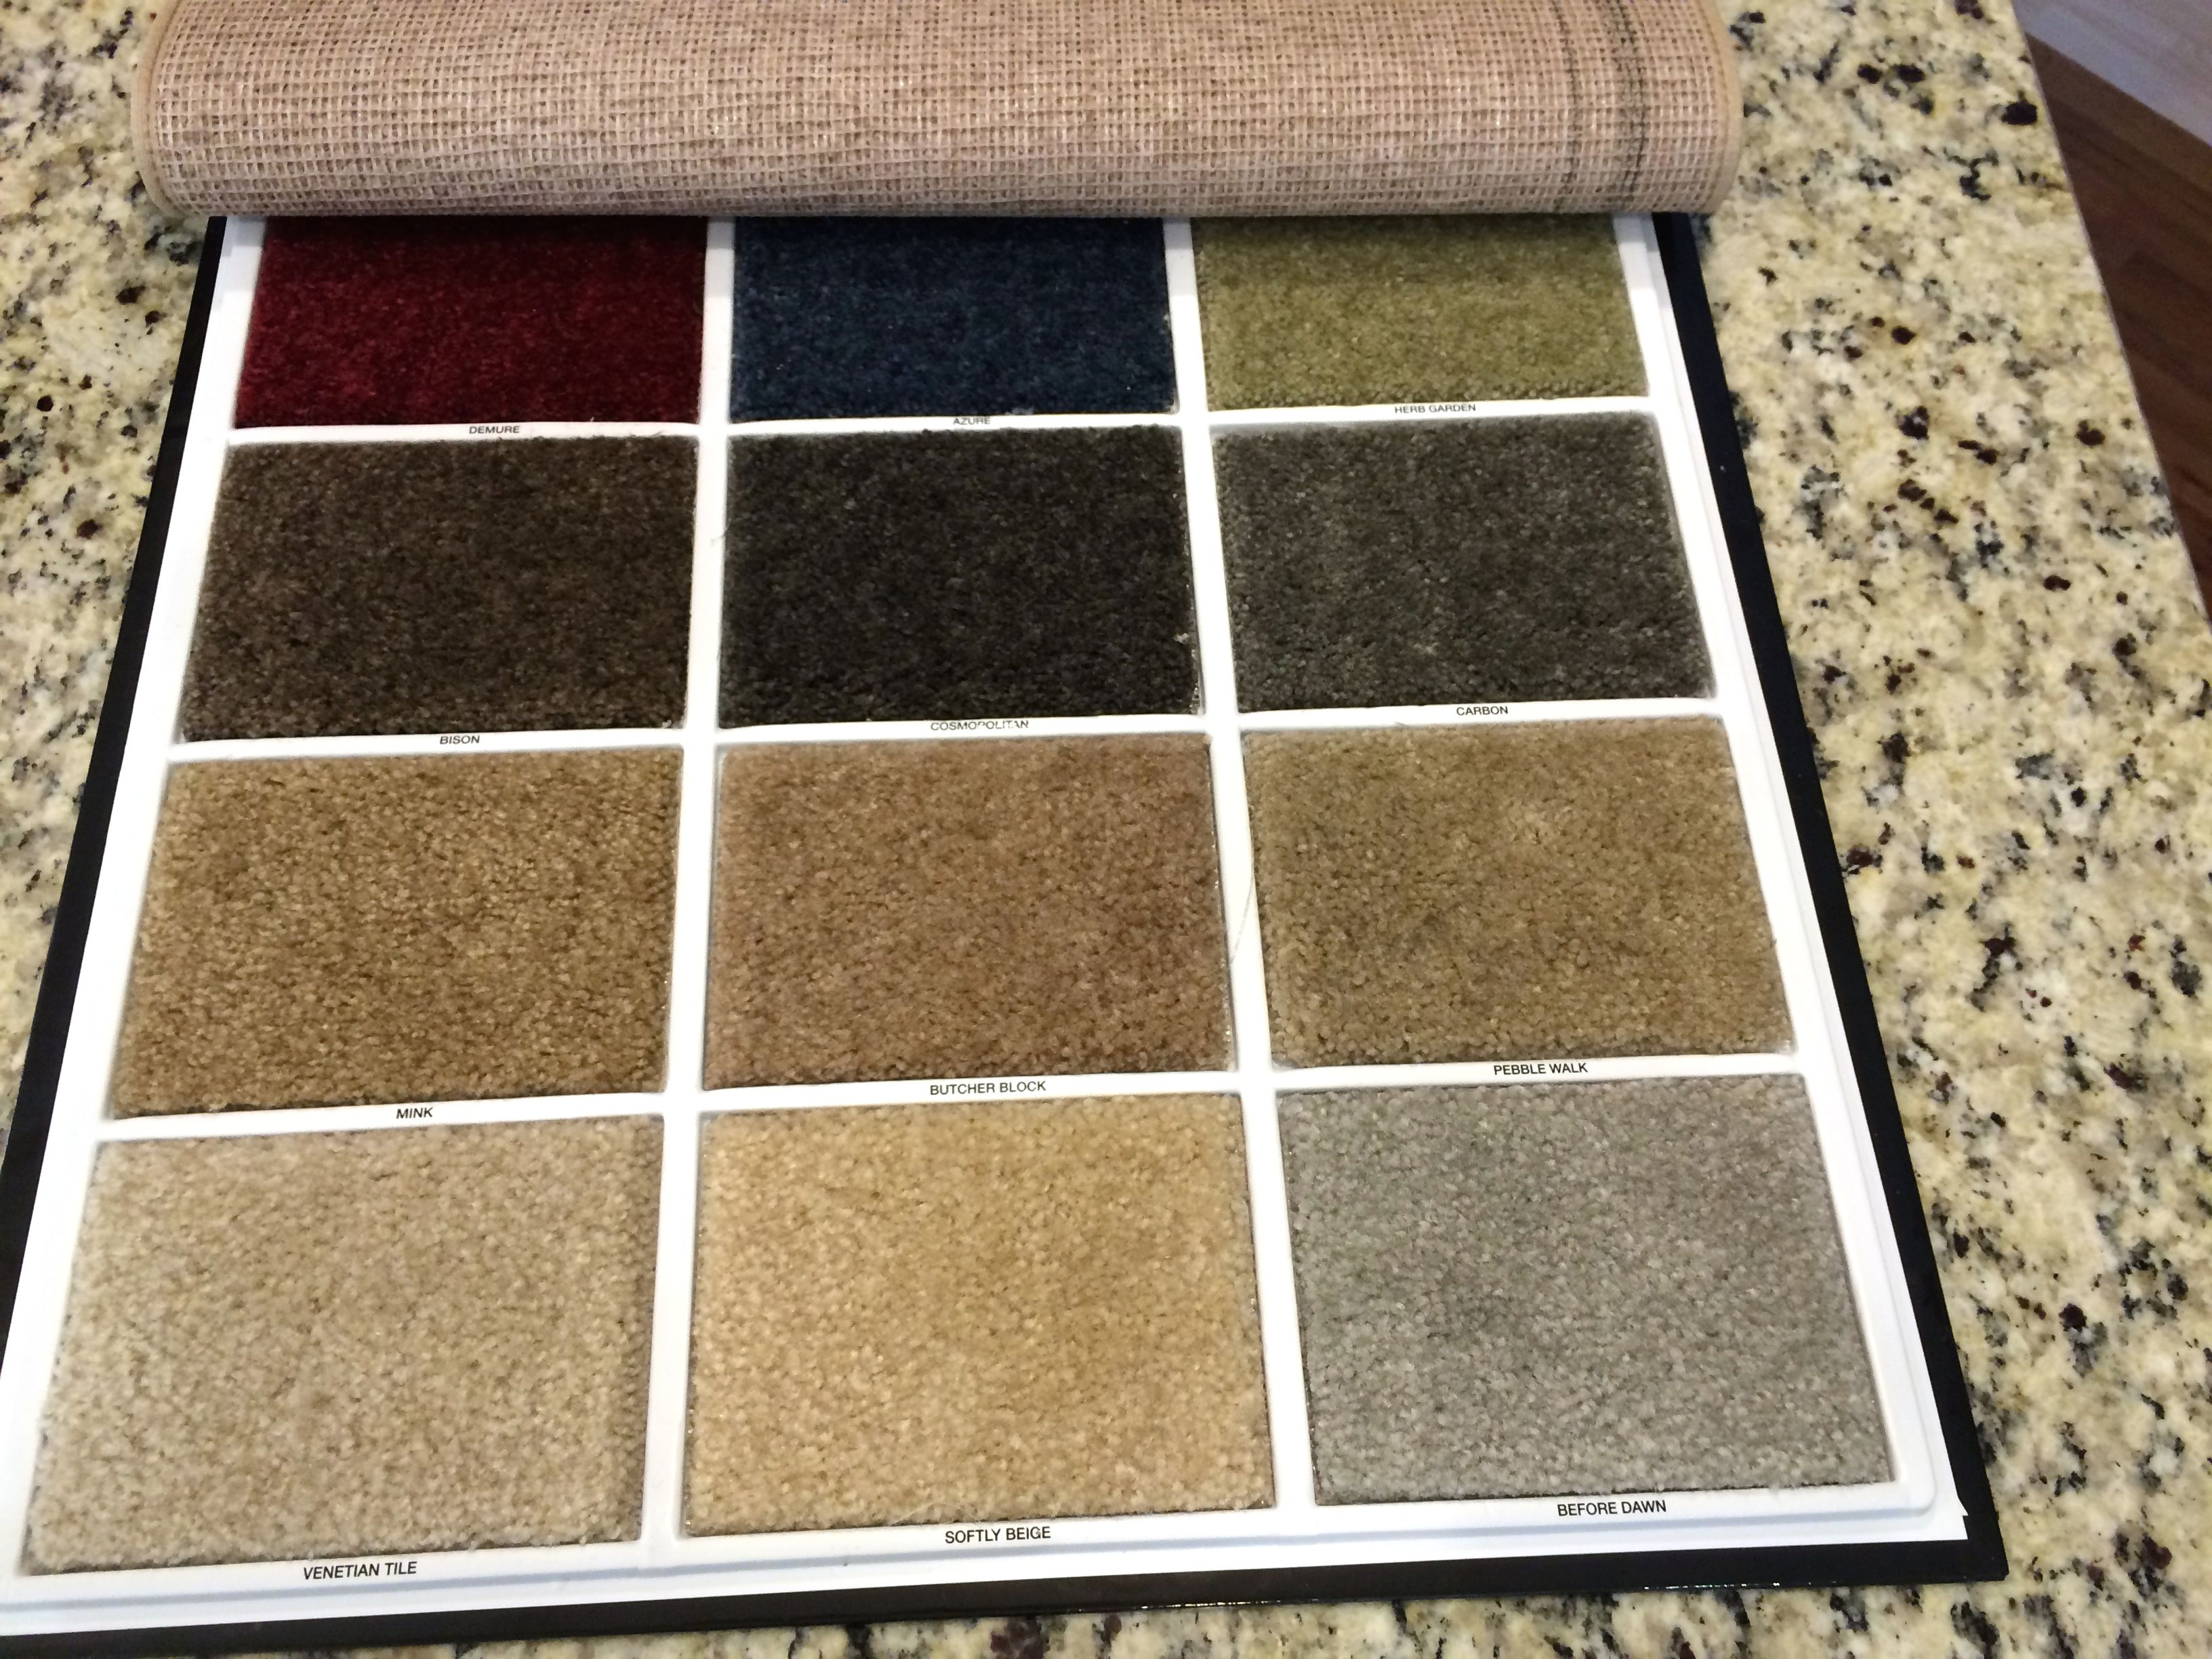 CARPET: In Upstairs Bedrooms And Loft. Carpet Color Choices   Standard.  Need To